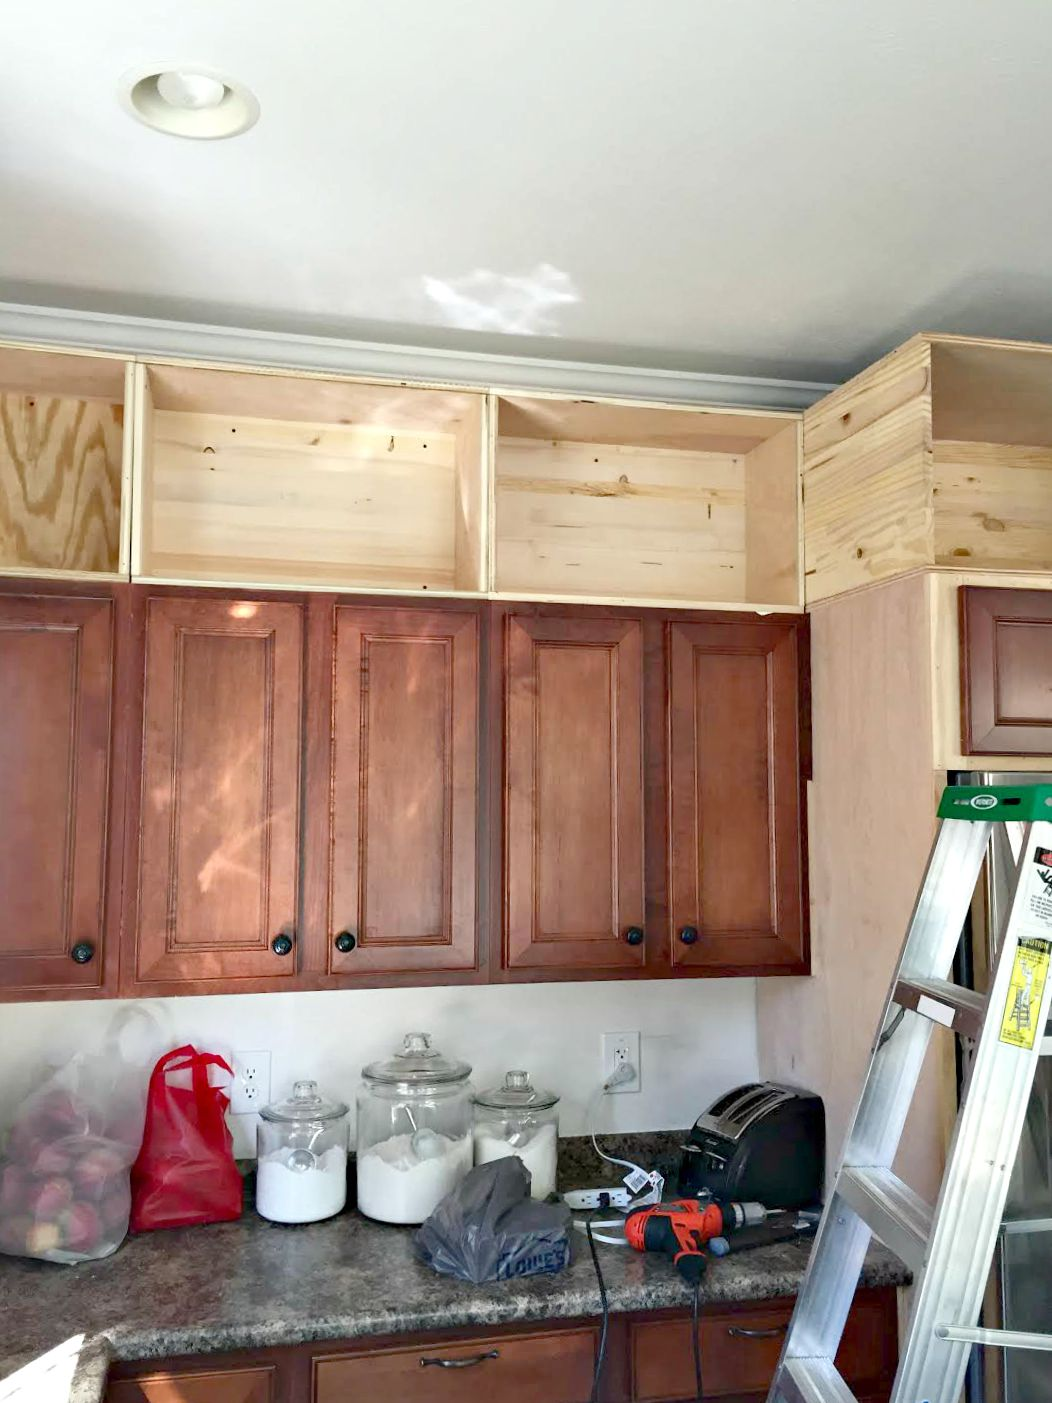 Diy Extend Kitchen Cabinets Building Cabinets Up To The Ceiling From Thrifty Decor Chick